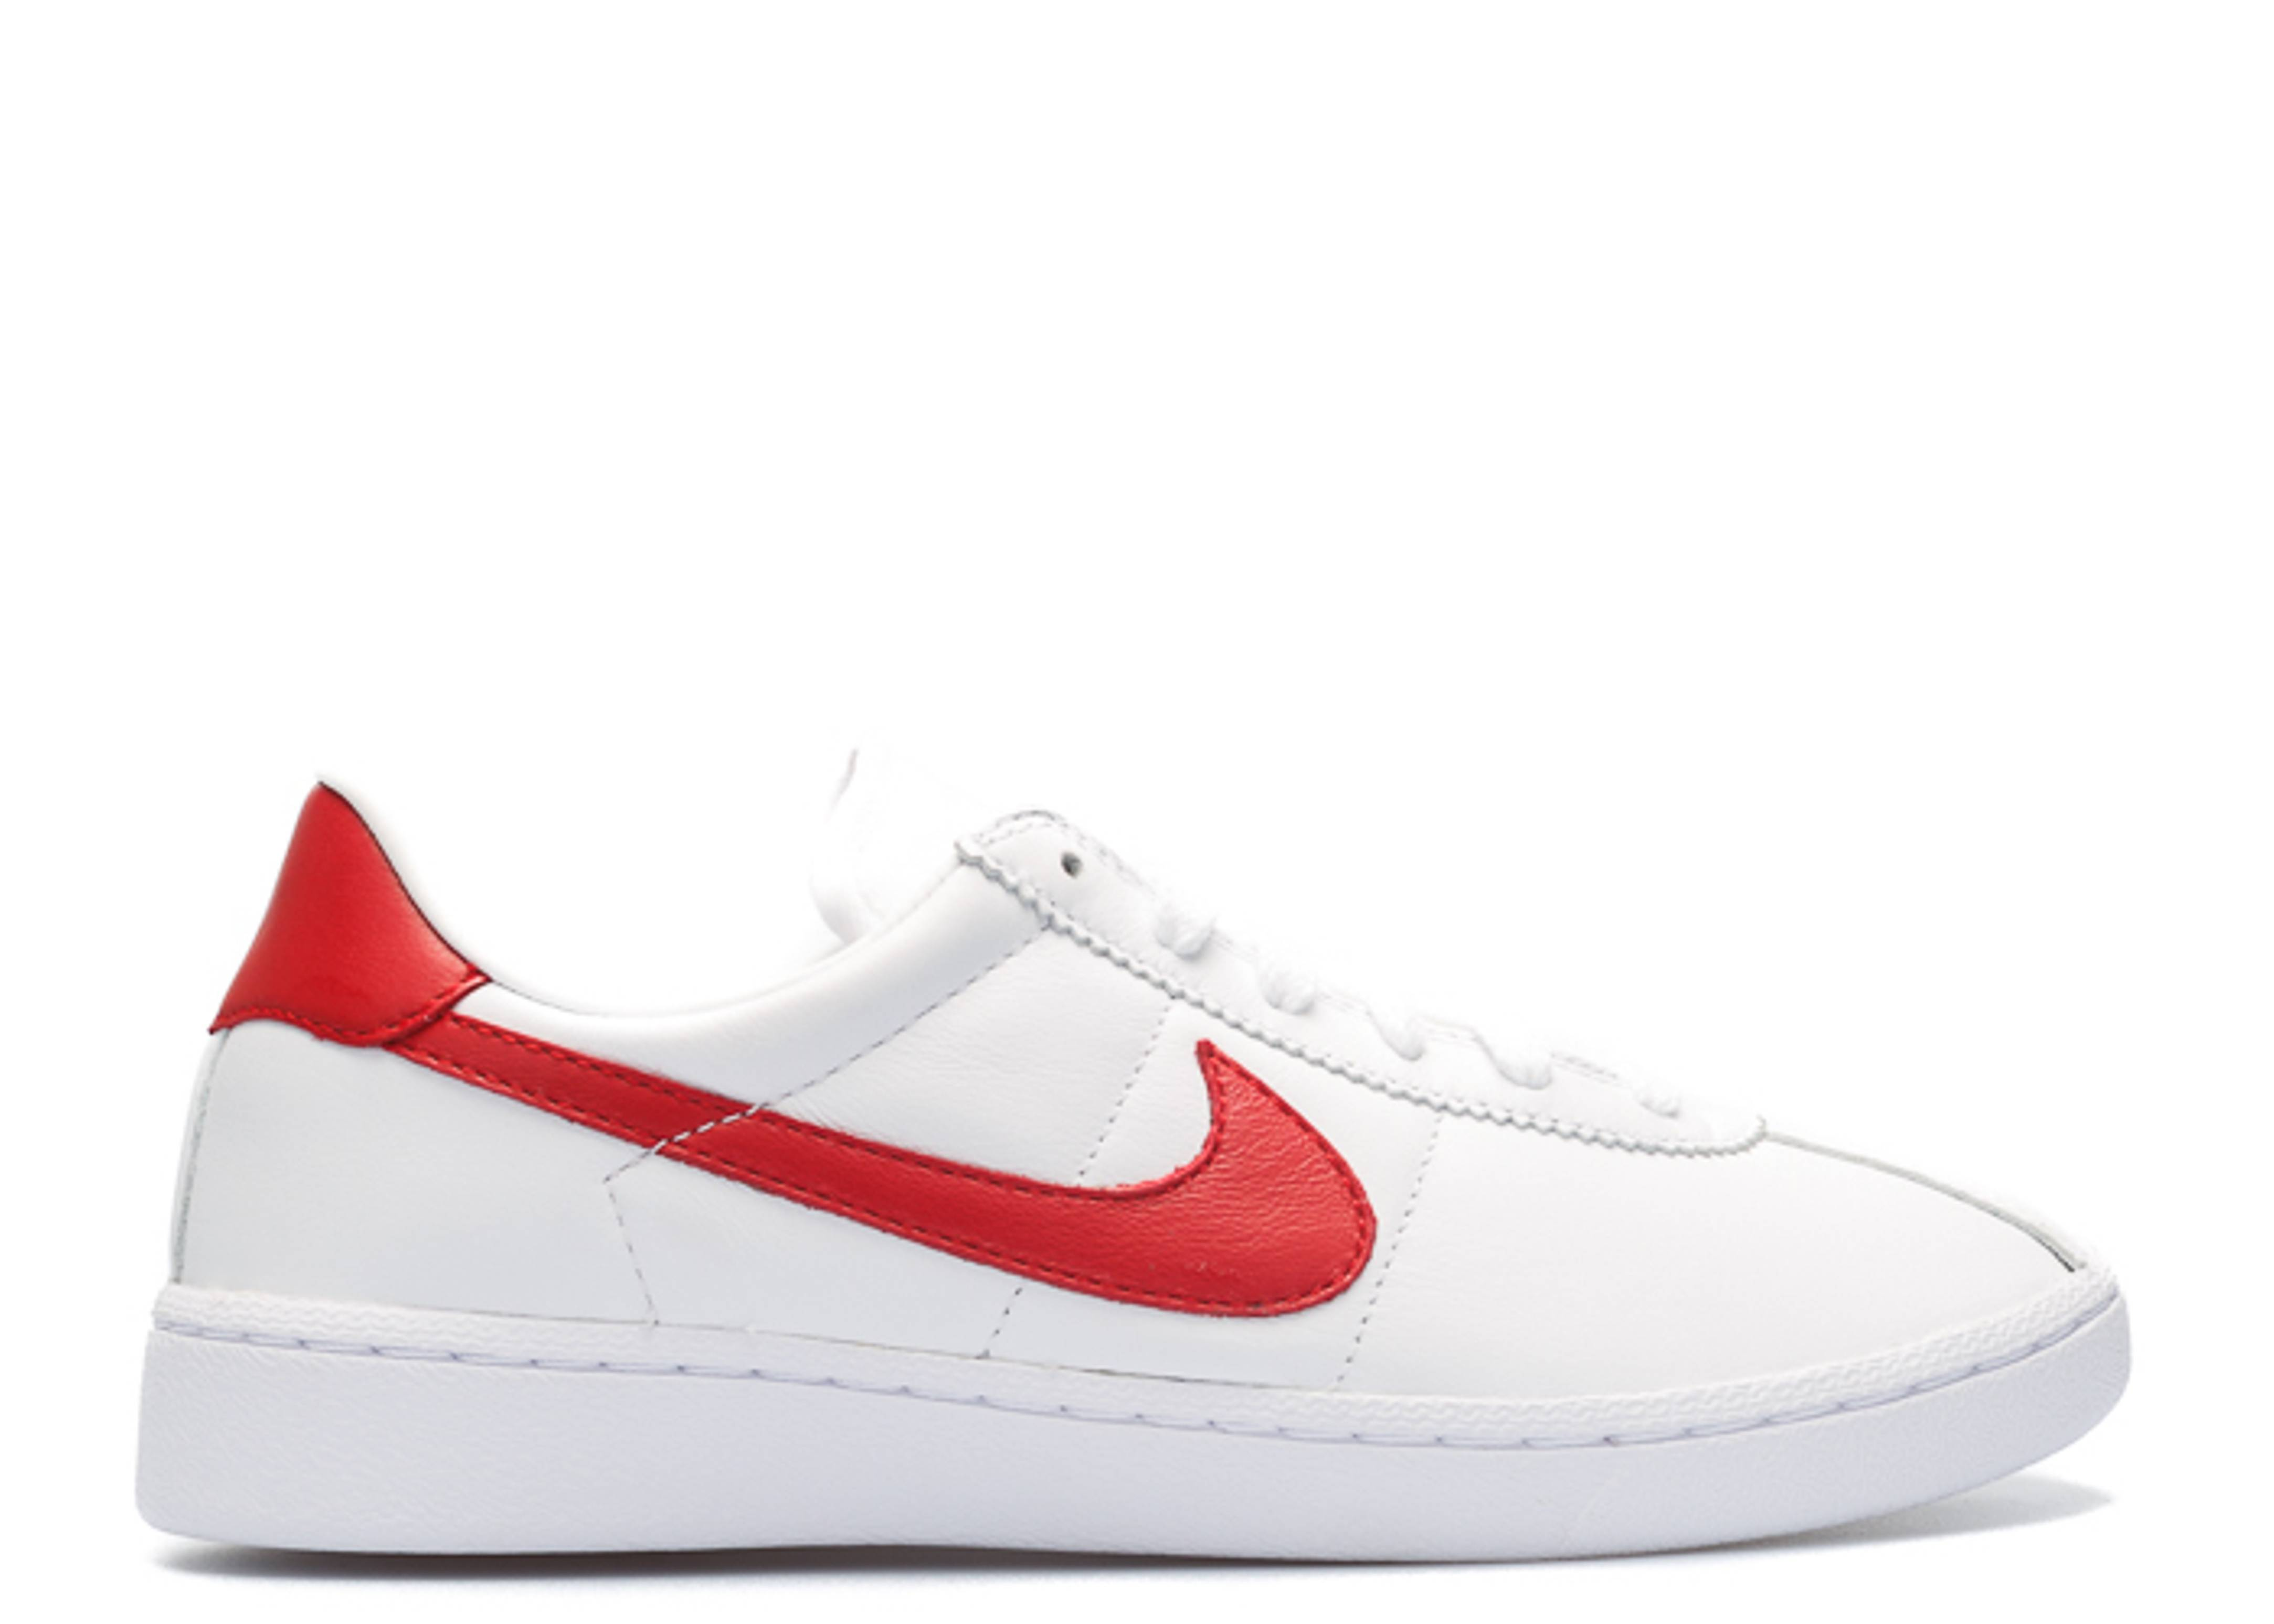 san francisco 9c229 1d3ab nike. bruin leather